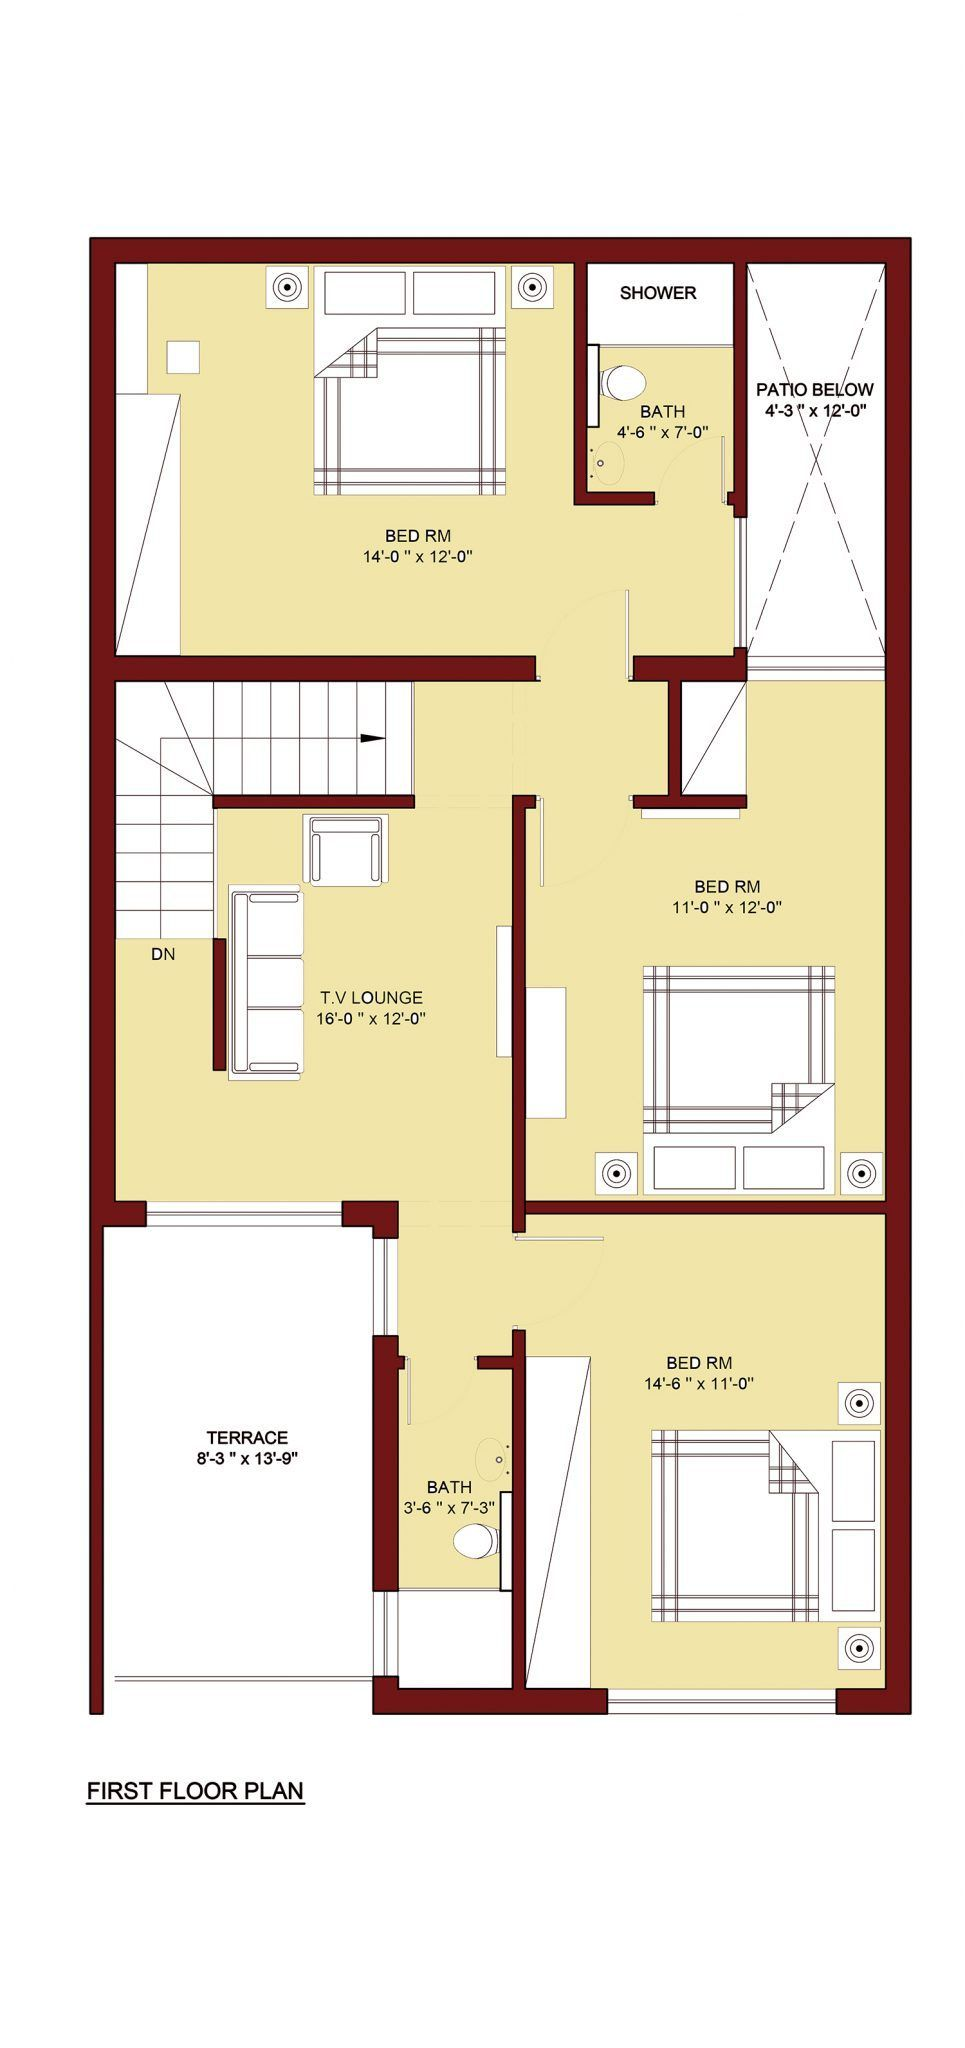 House floor plan house design pinterest bed room house and room